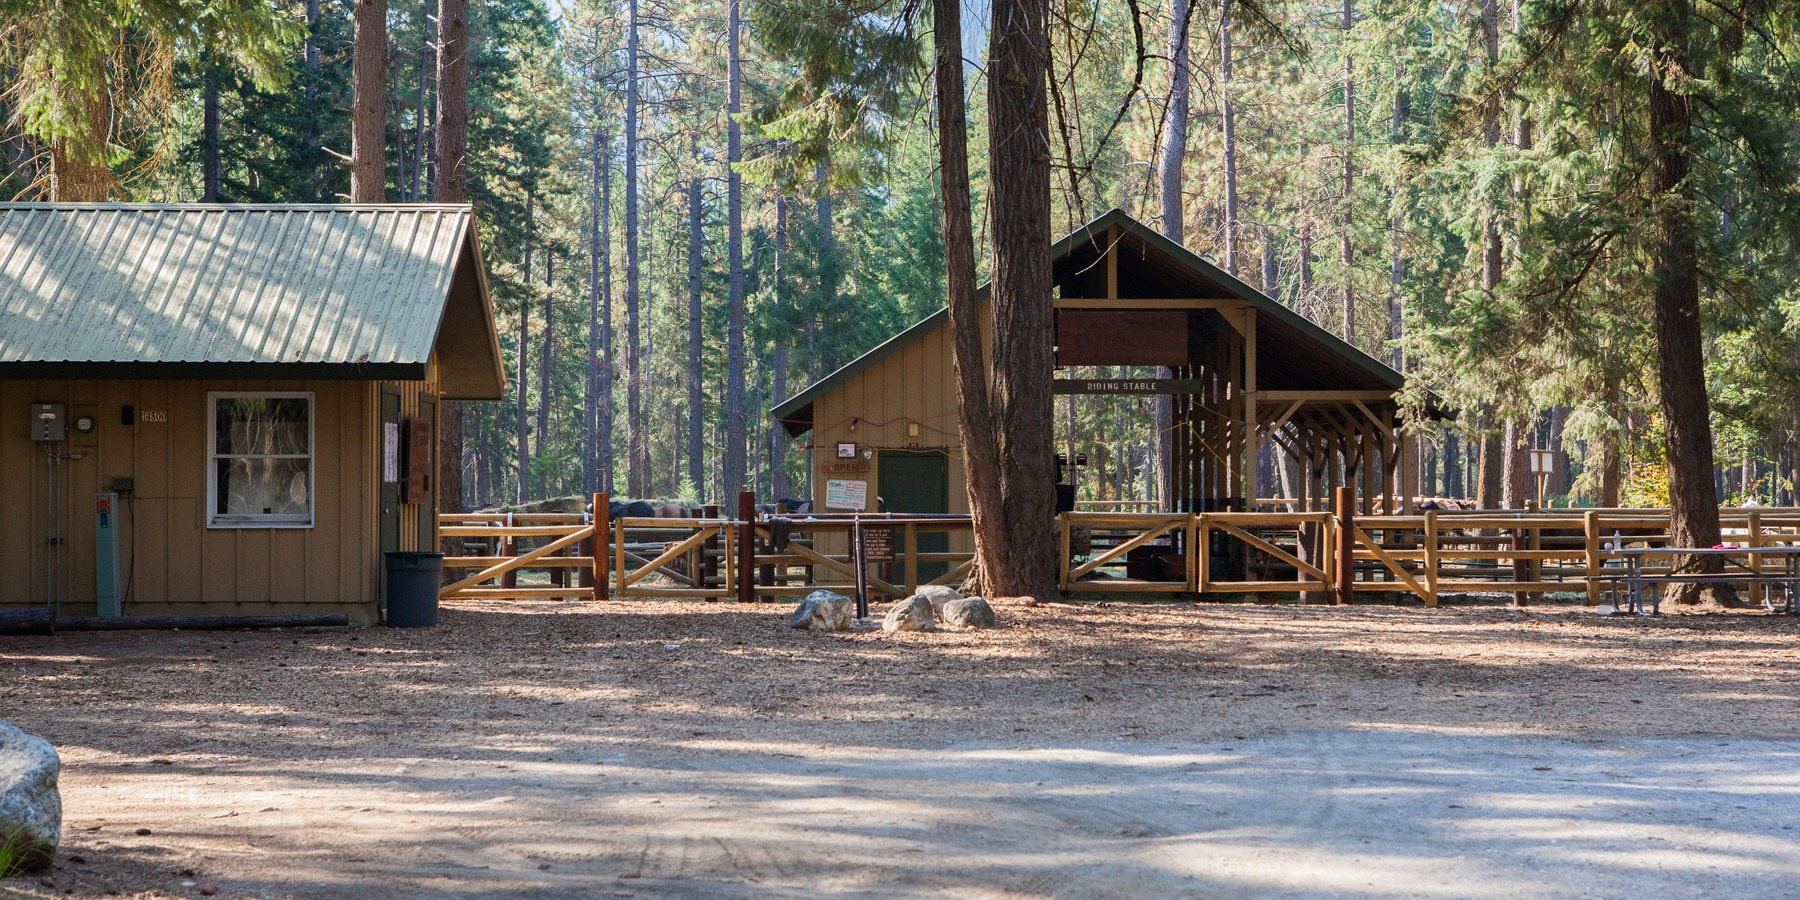 Lake wenatchee state park south campground outdoor project for Washington state park cabins